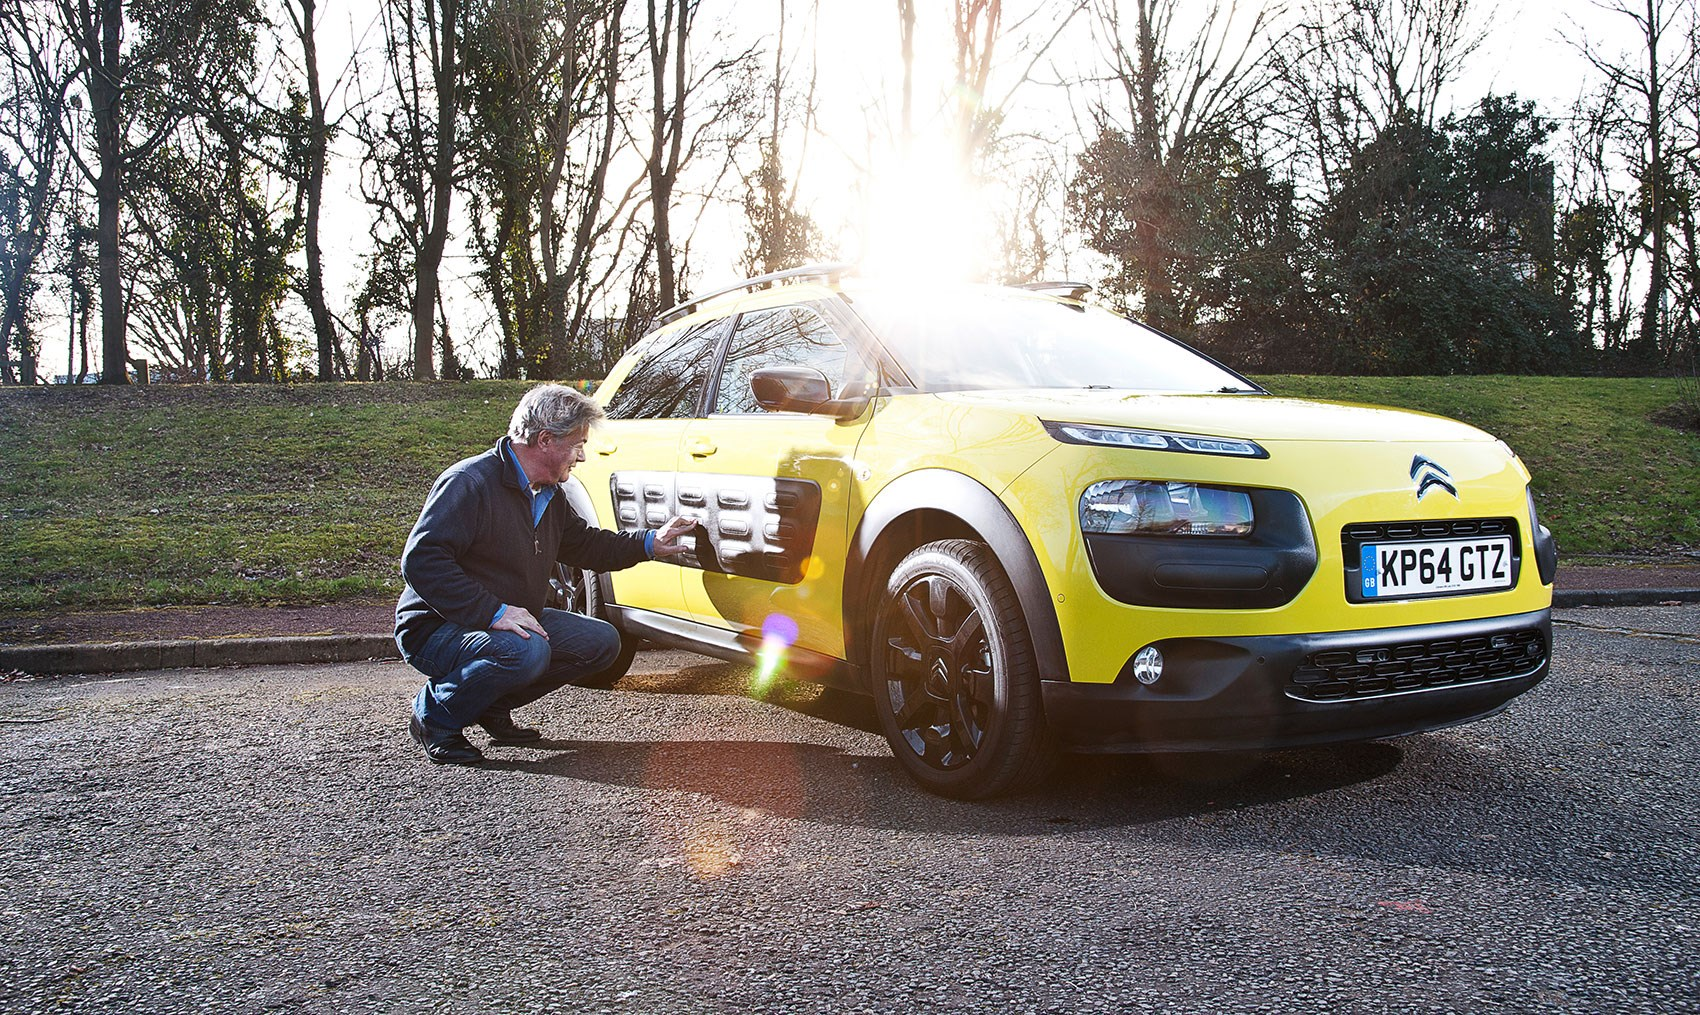 Anthony ponders the Cactus conundrum Anthony ff-C and his new Citroen C4  Cactus